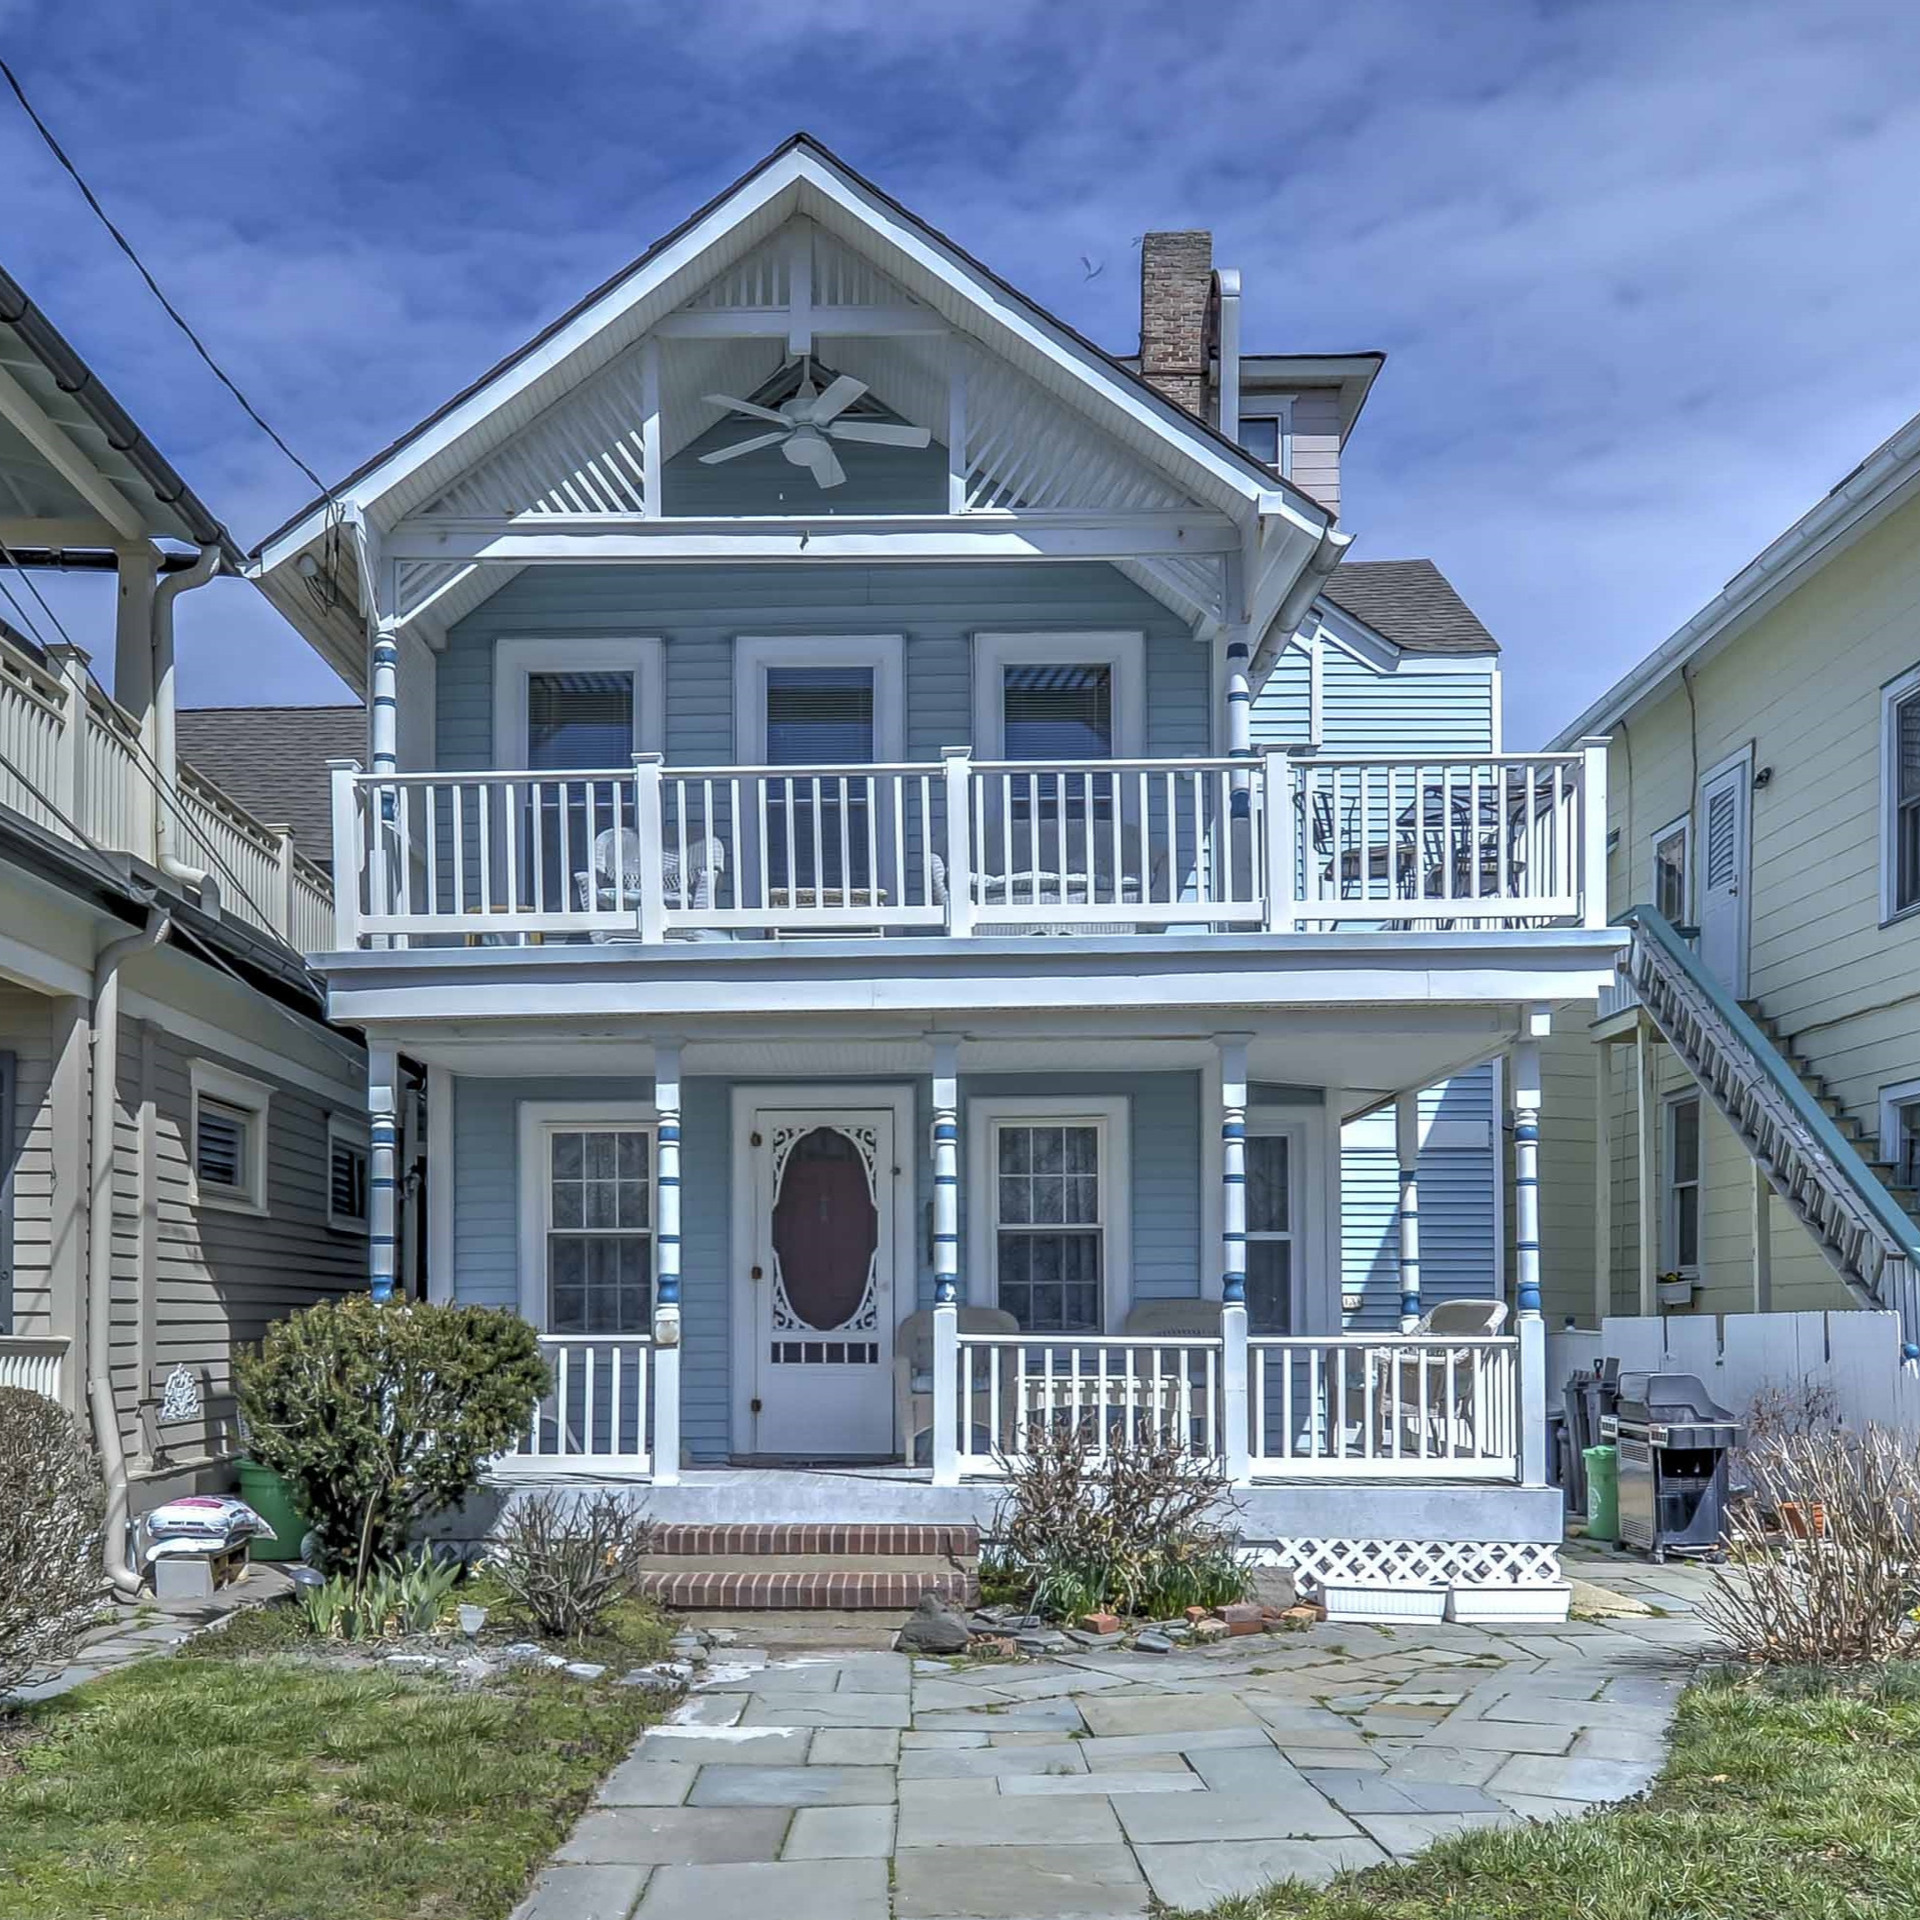 Vacation house rentals in NJ | Vrbo